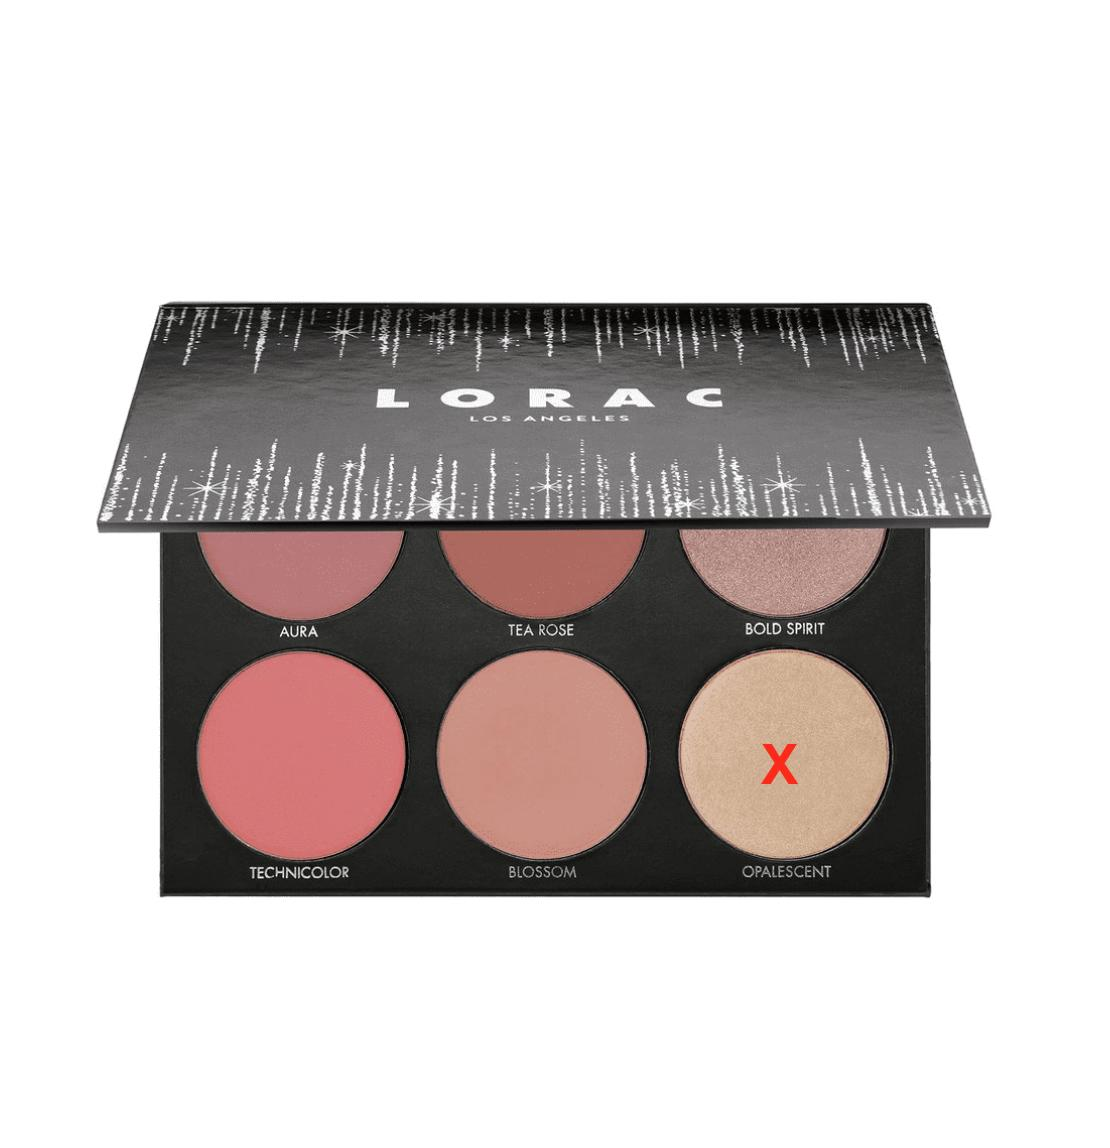 LORAC Shine Bright Color Source & Light Source Cheek Palette (without opalescent)